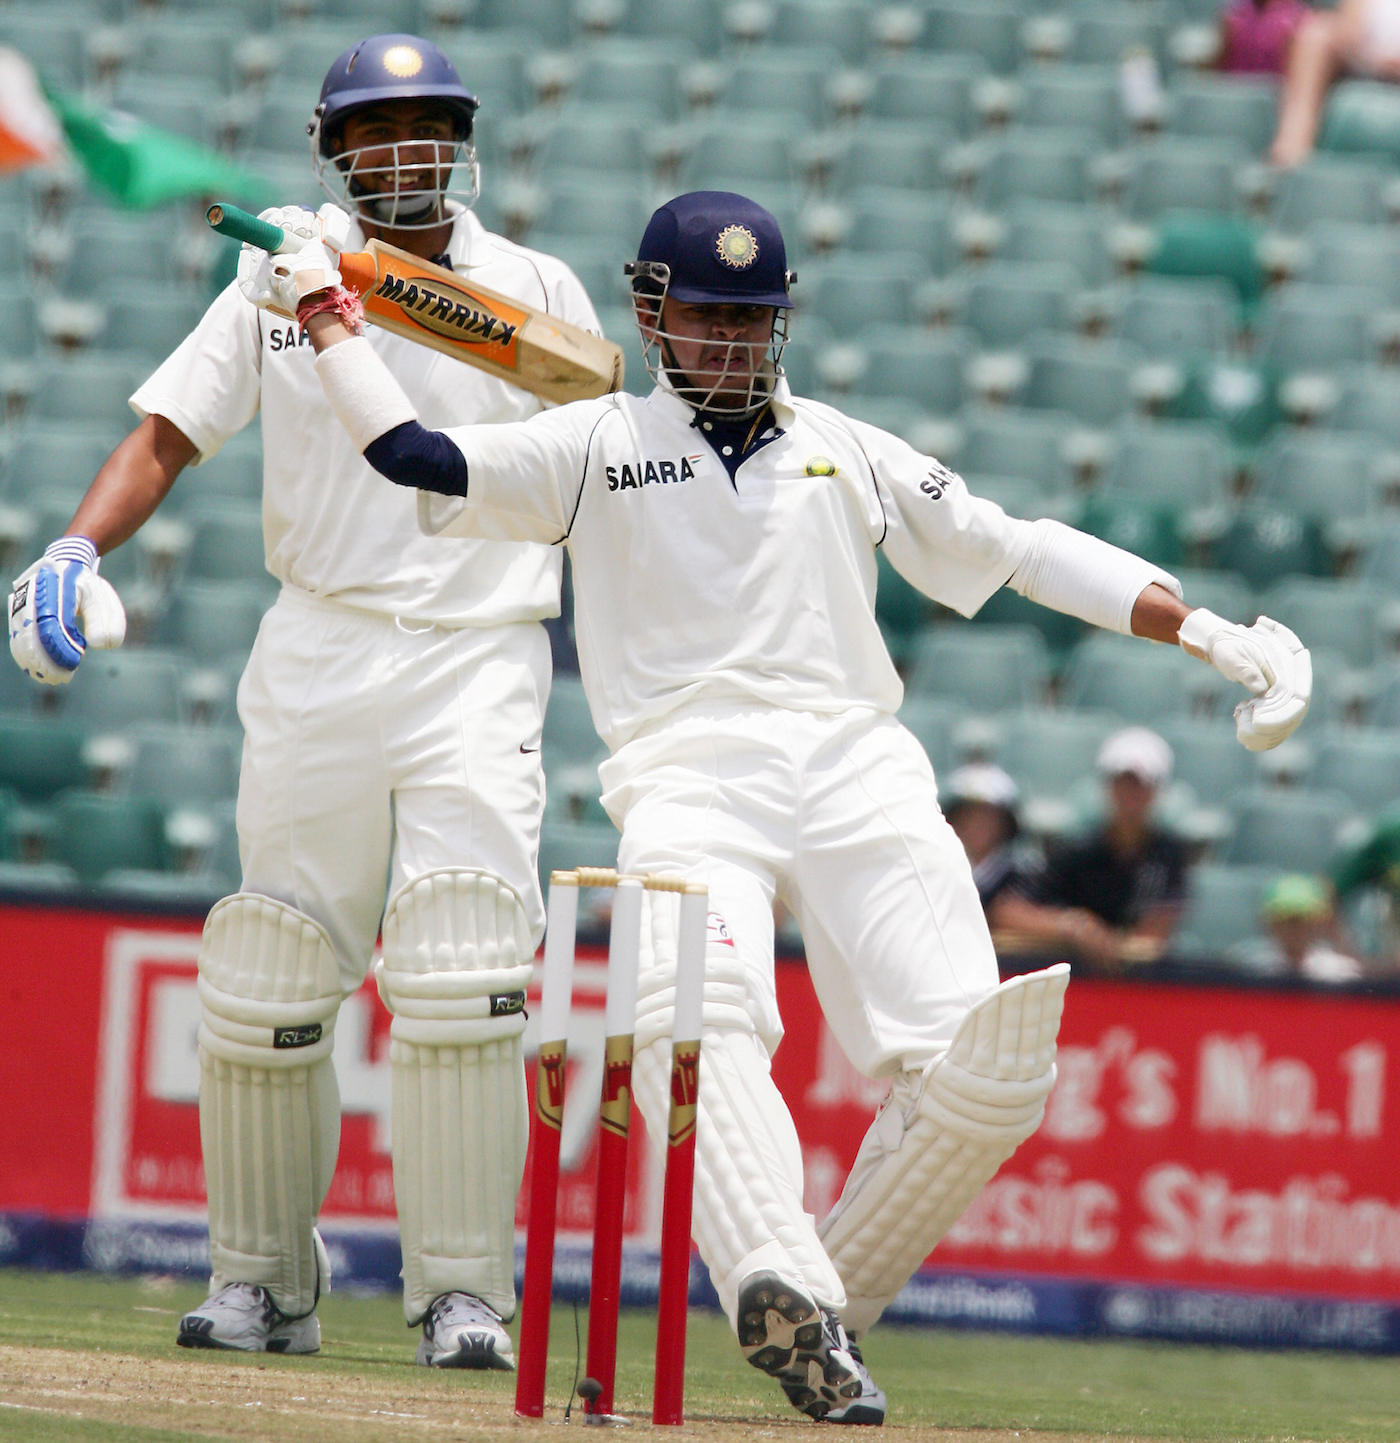 Clowns R Us: Sreesanth gets on his invisible pony after hitting a six off Andre Nel in Johannesburg in 2006